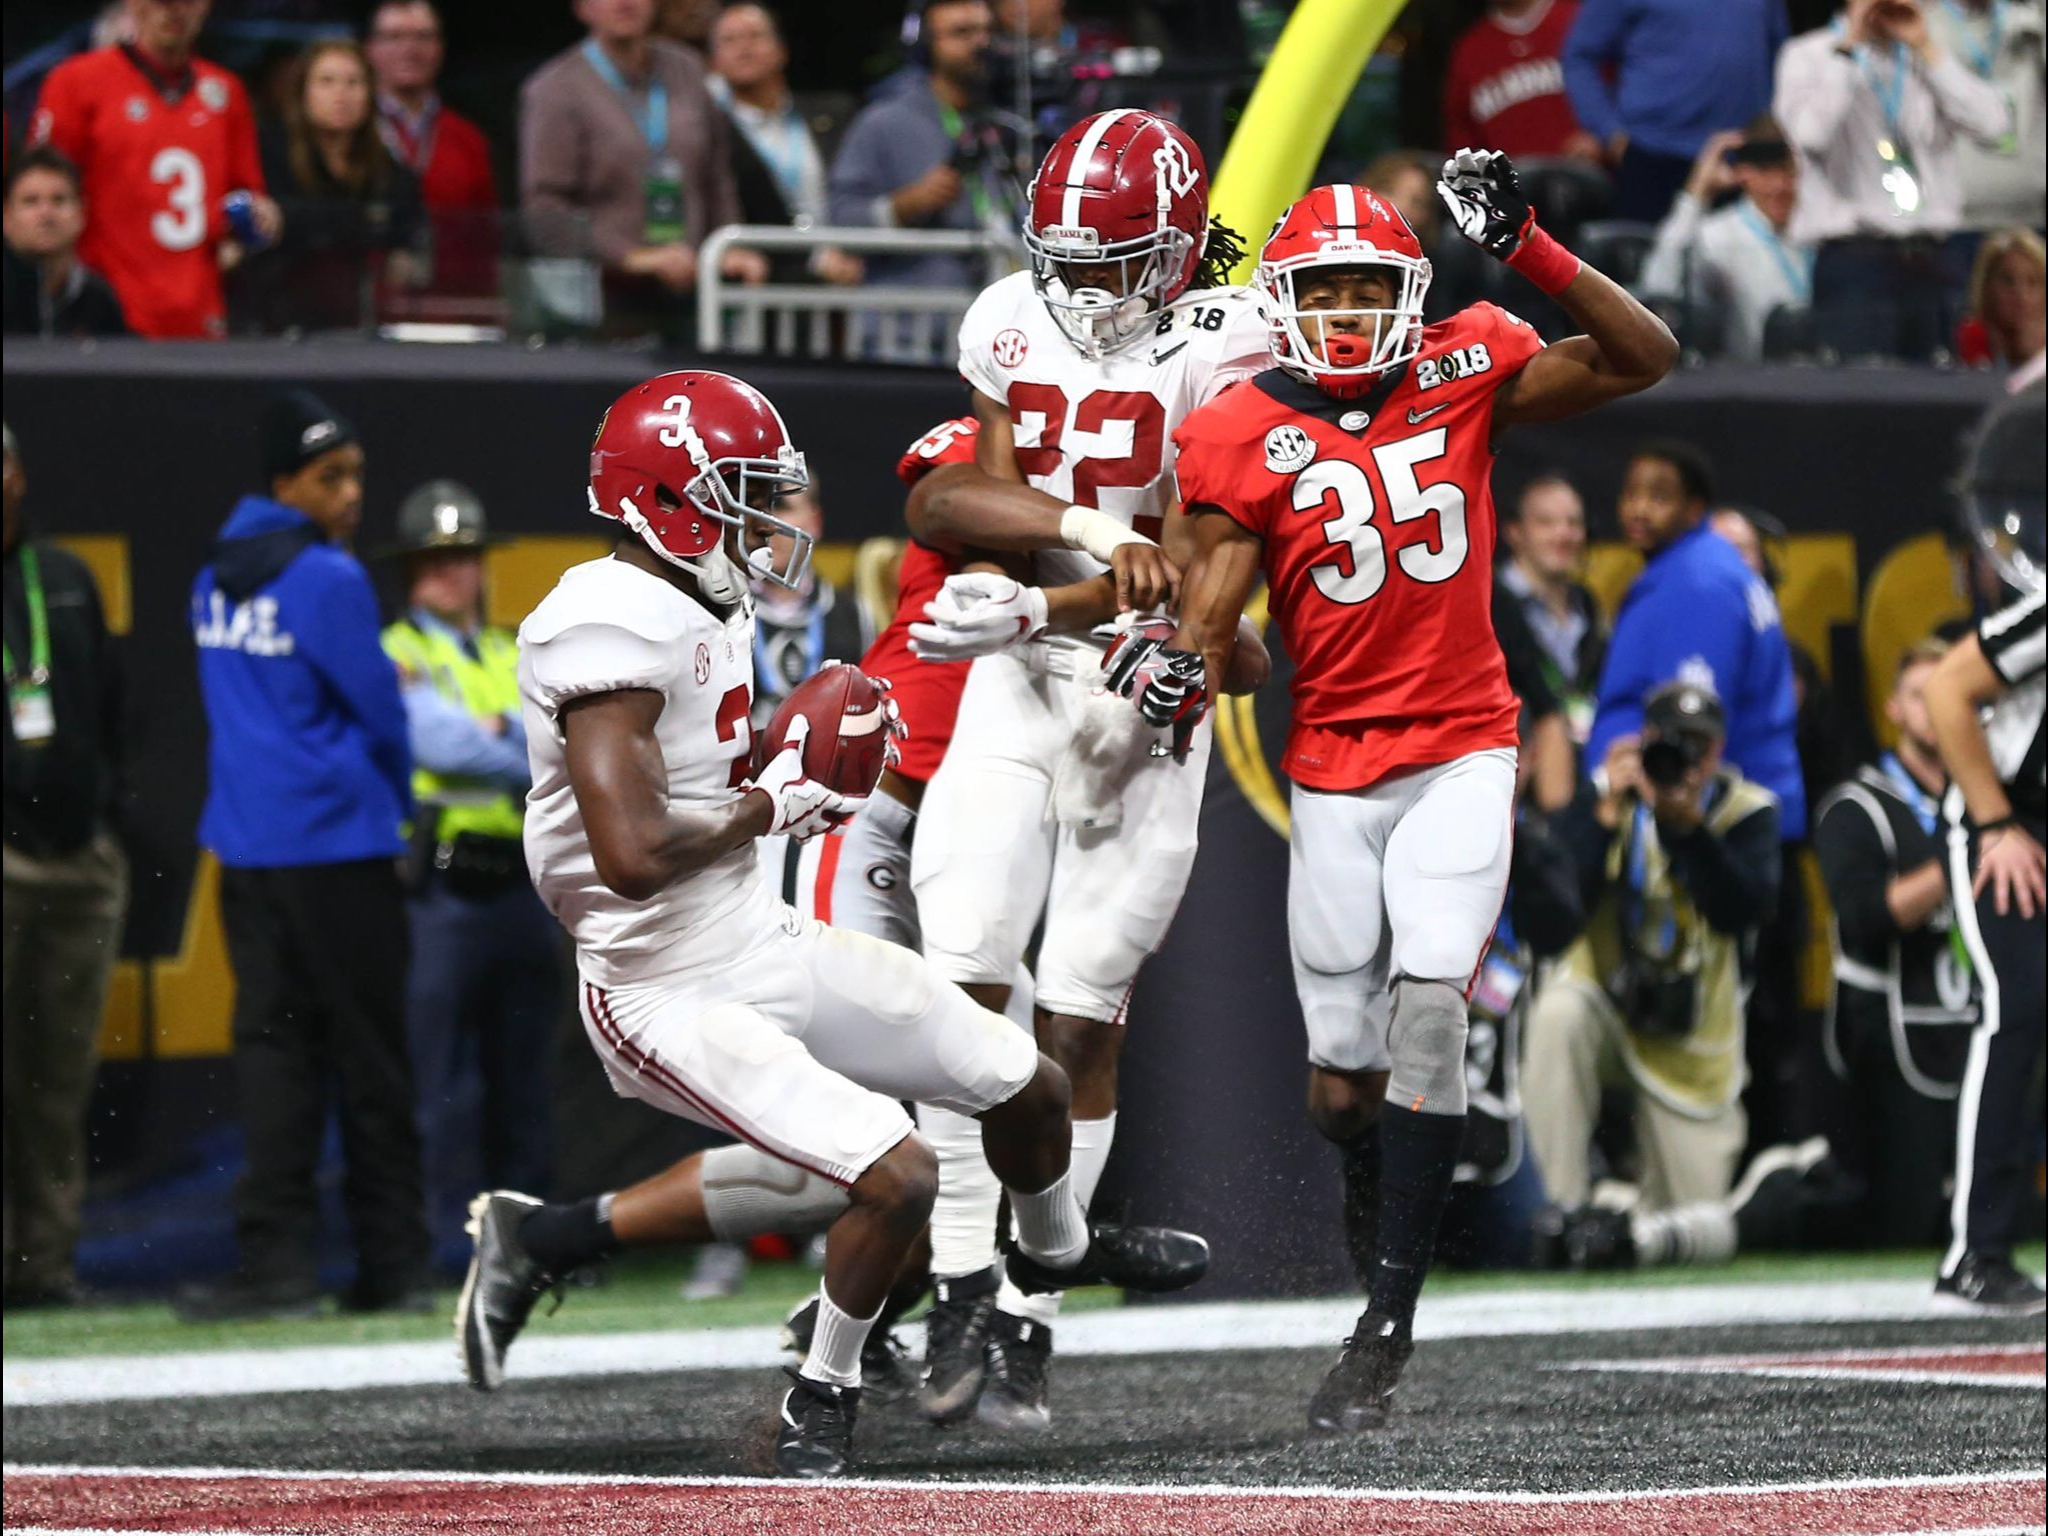 Calvin Ridley Touchdown Usa Today Sports Picture Alabama 26 Georgia 23 In Ot Alabama Rollti Alabama Football Roll Tide Bama Football Alabama Crimson Tide